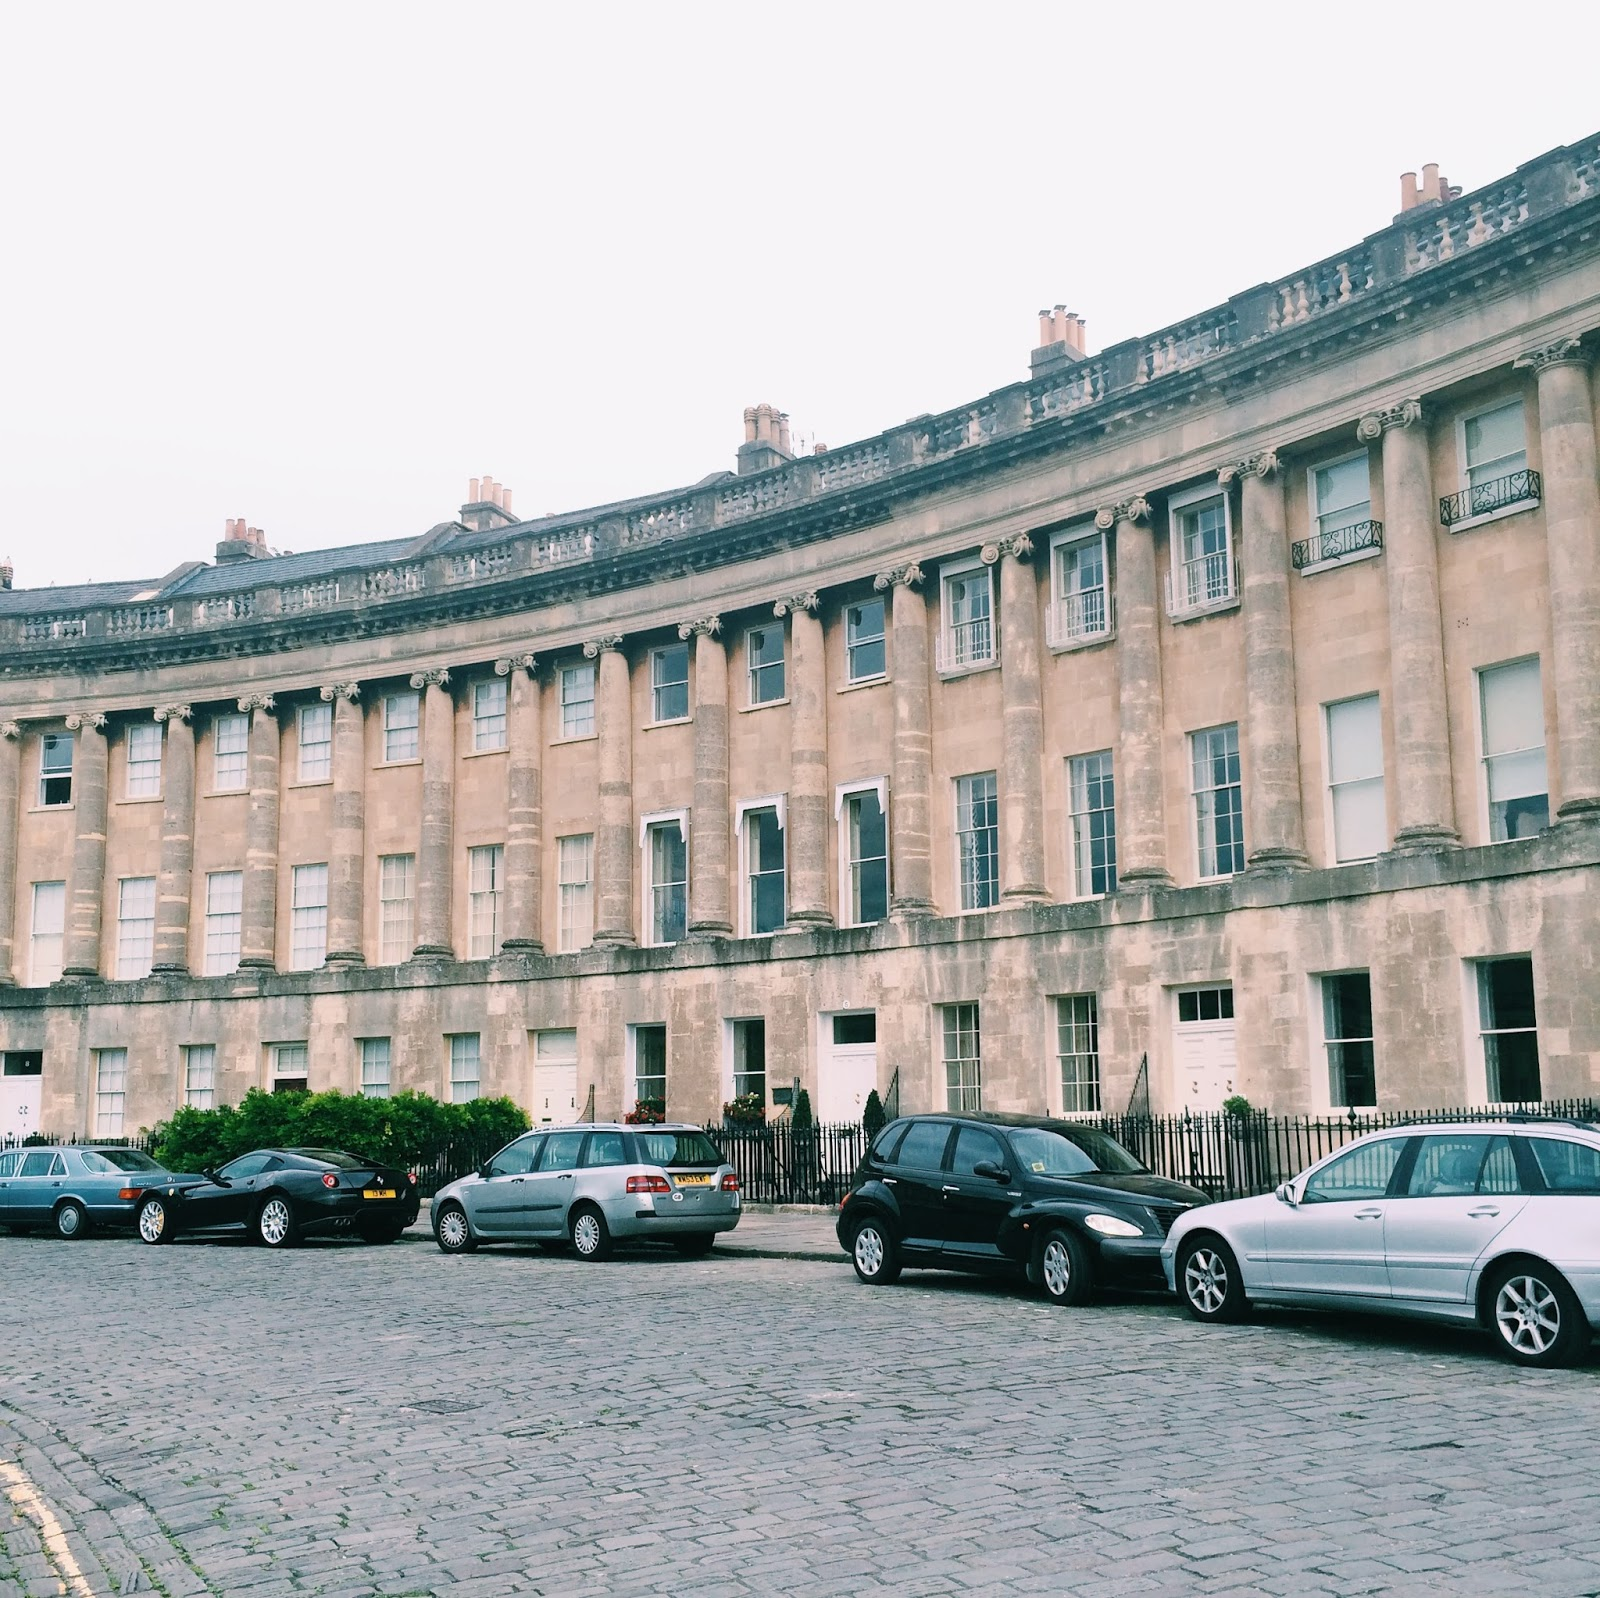 Royal Crescent apartments in Bath, England